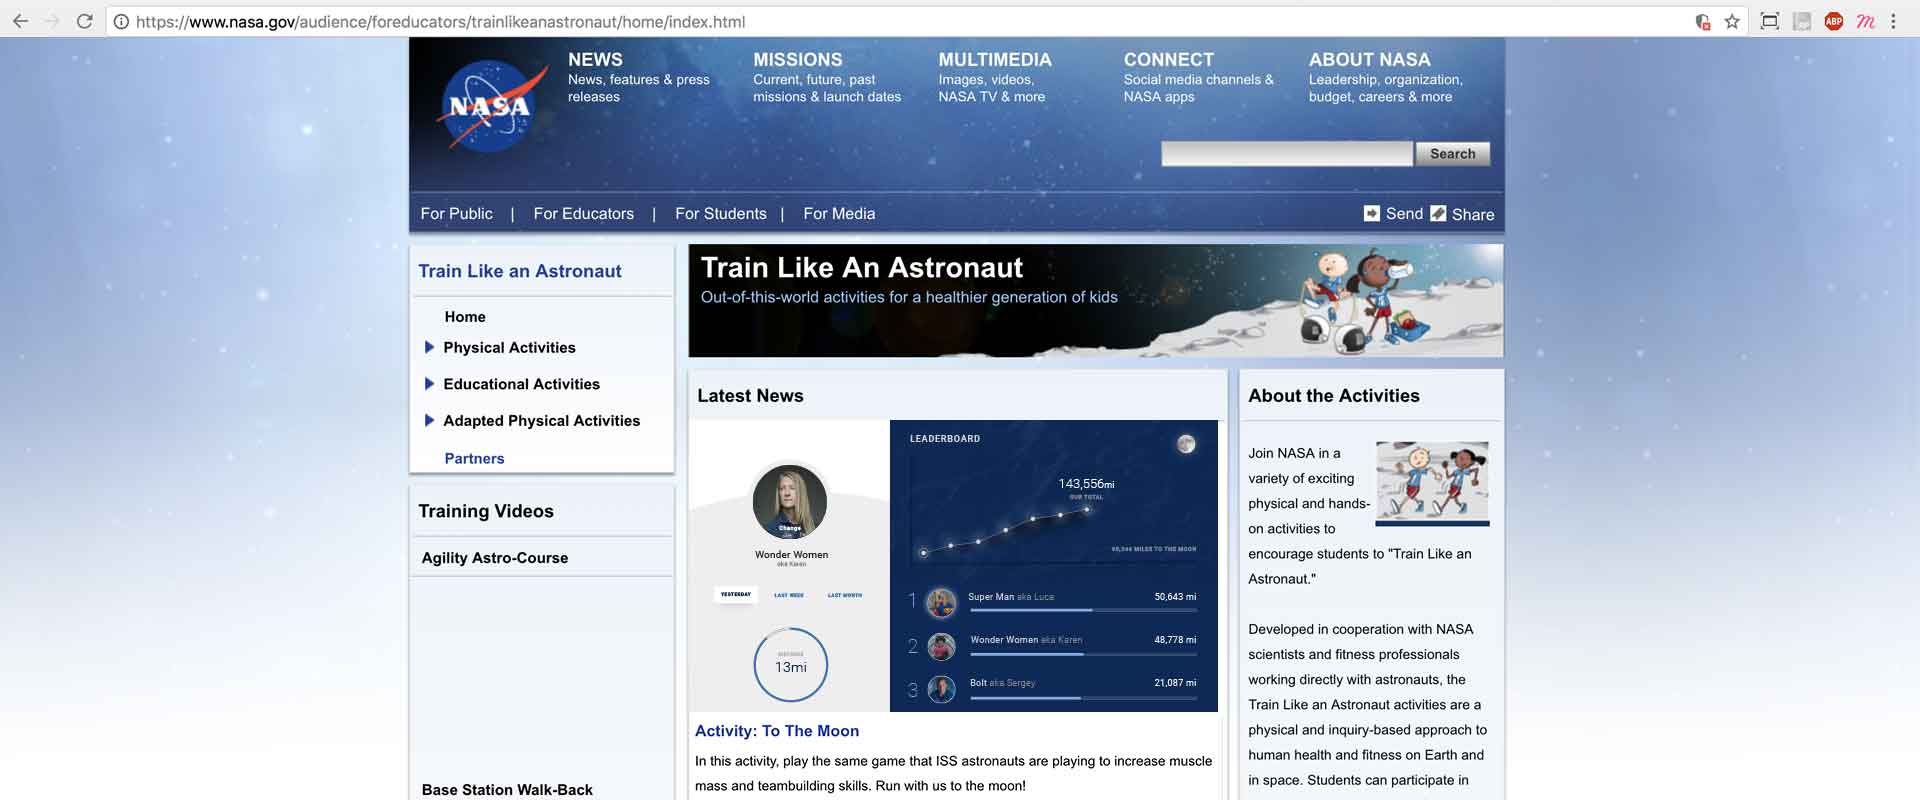 The NASA Train Like an Astronaut homepage